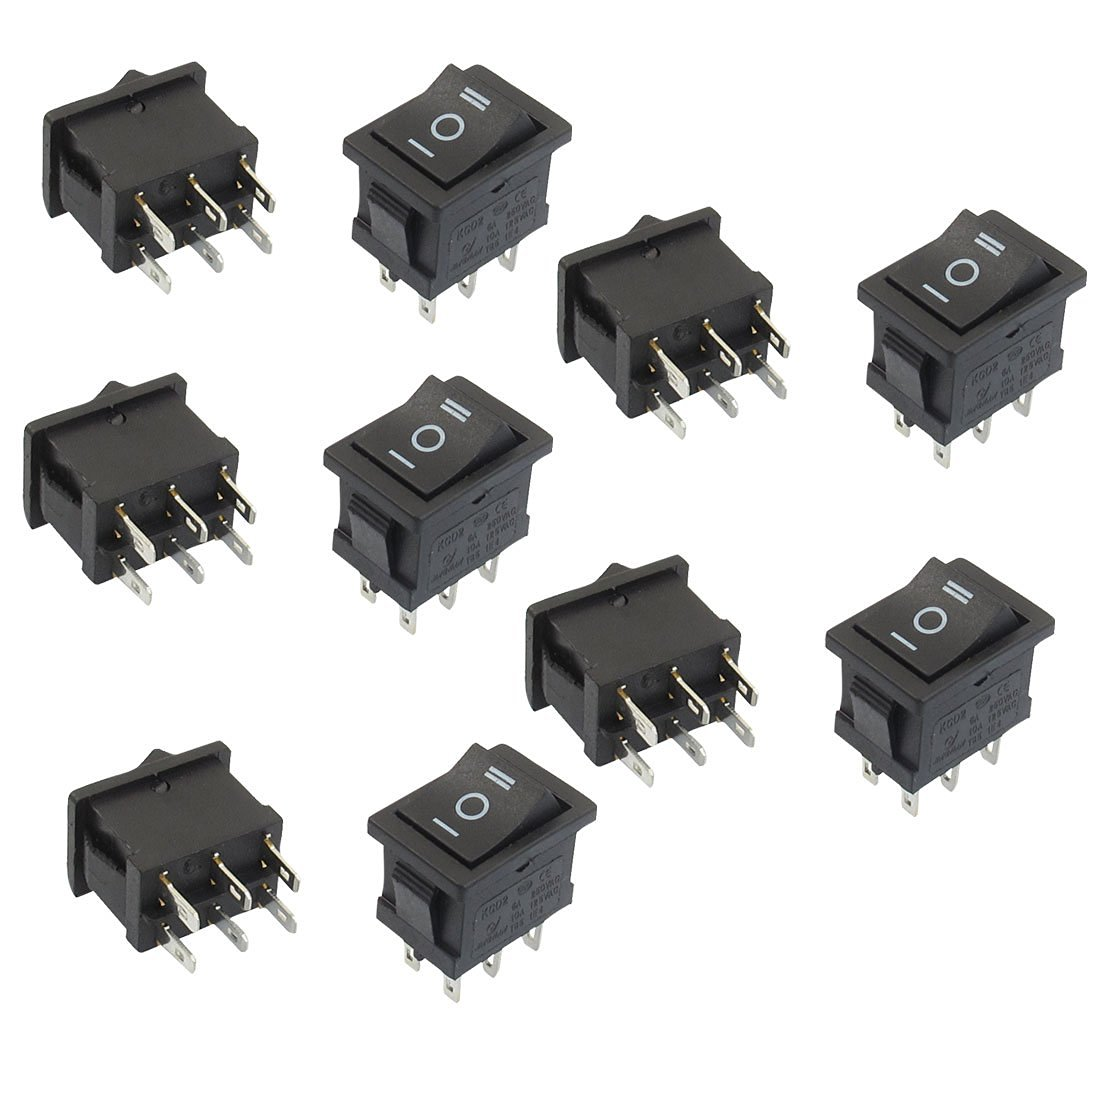 uxcell 10 Pcs DPDT Black Button On/Off/On Rocker Switch AC 6A/250V 10A/125V